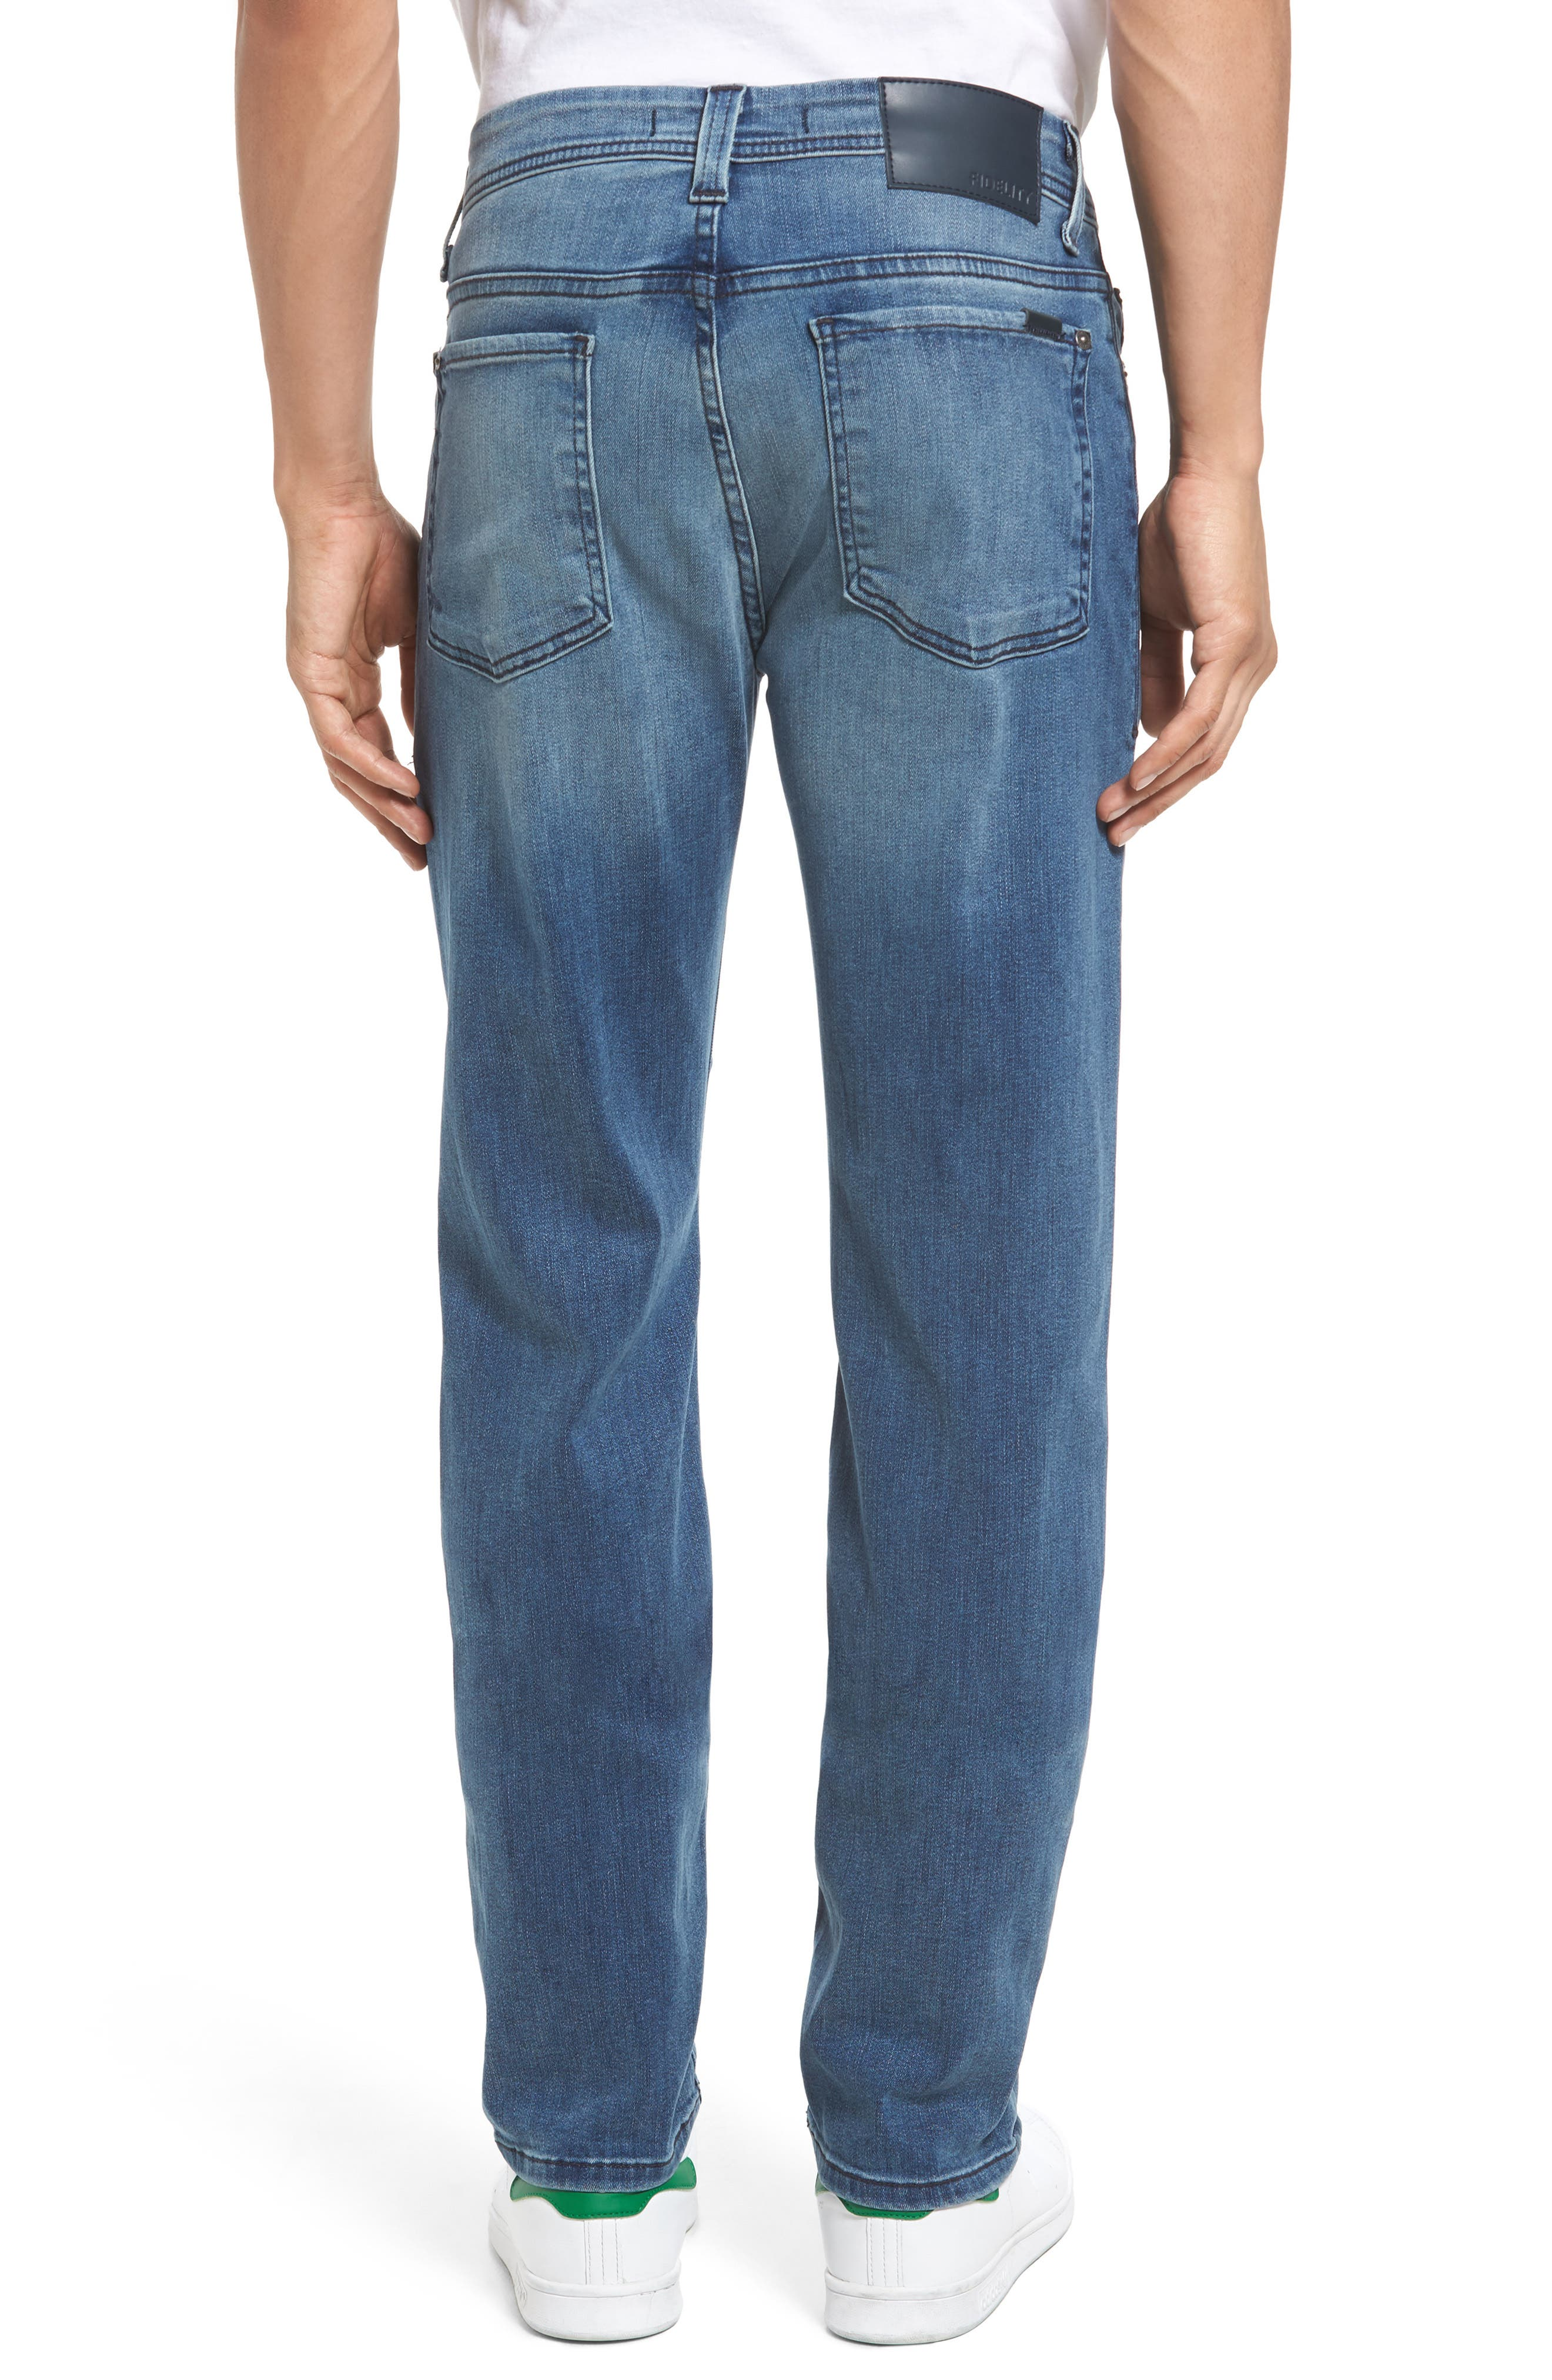 Jimmy Slim Straight Leg Jeans,                             Alternate thumbnail 2, color,                             400